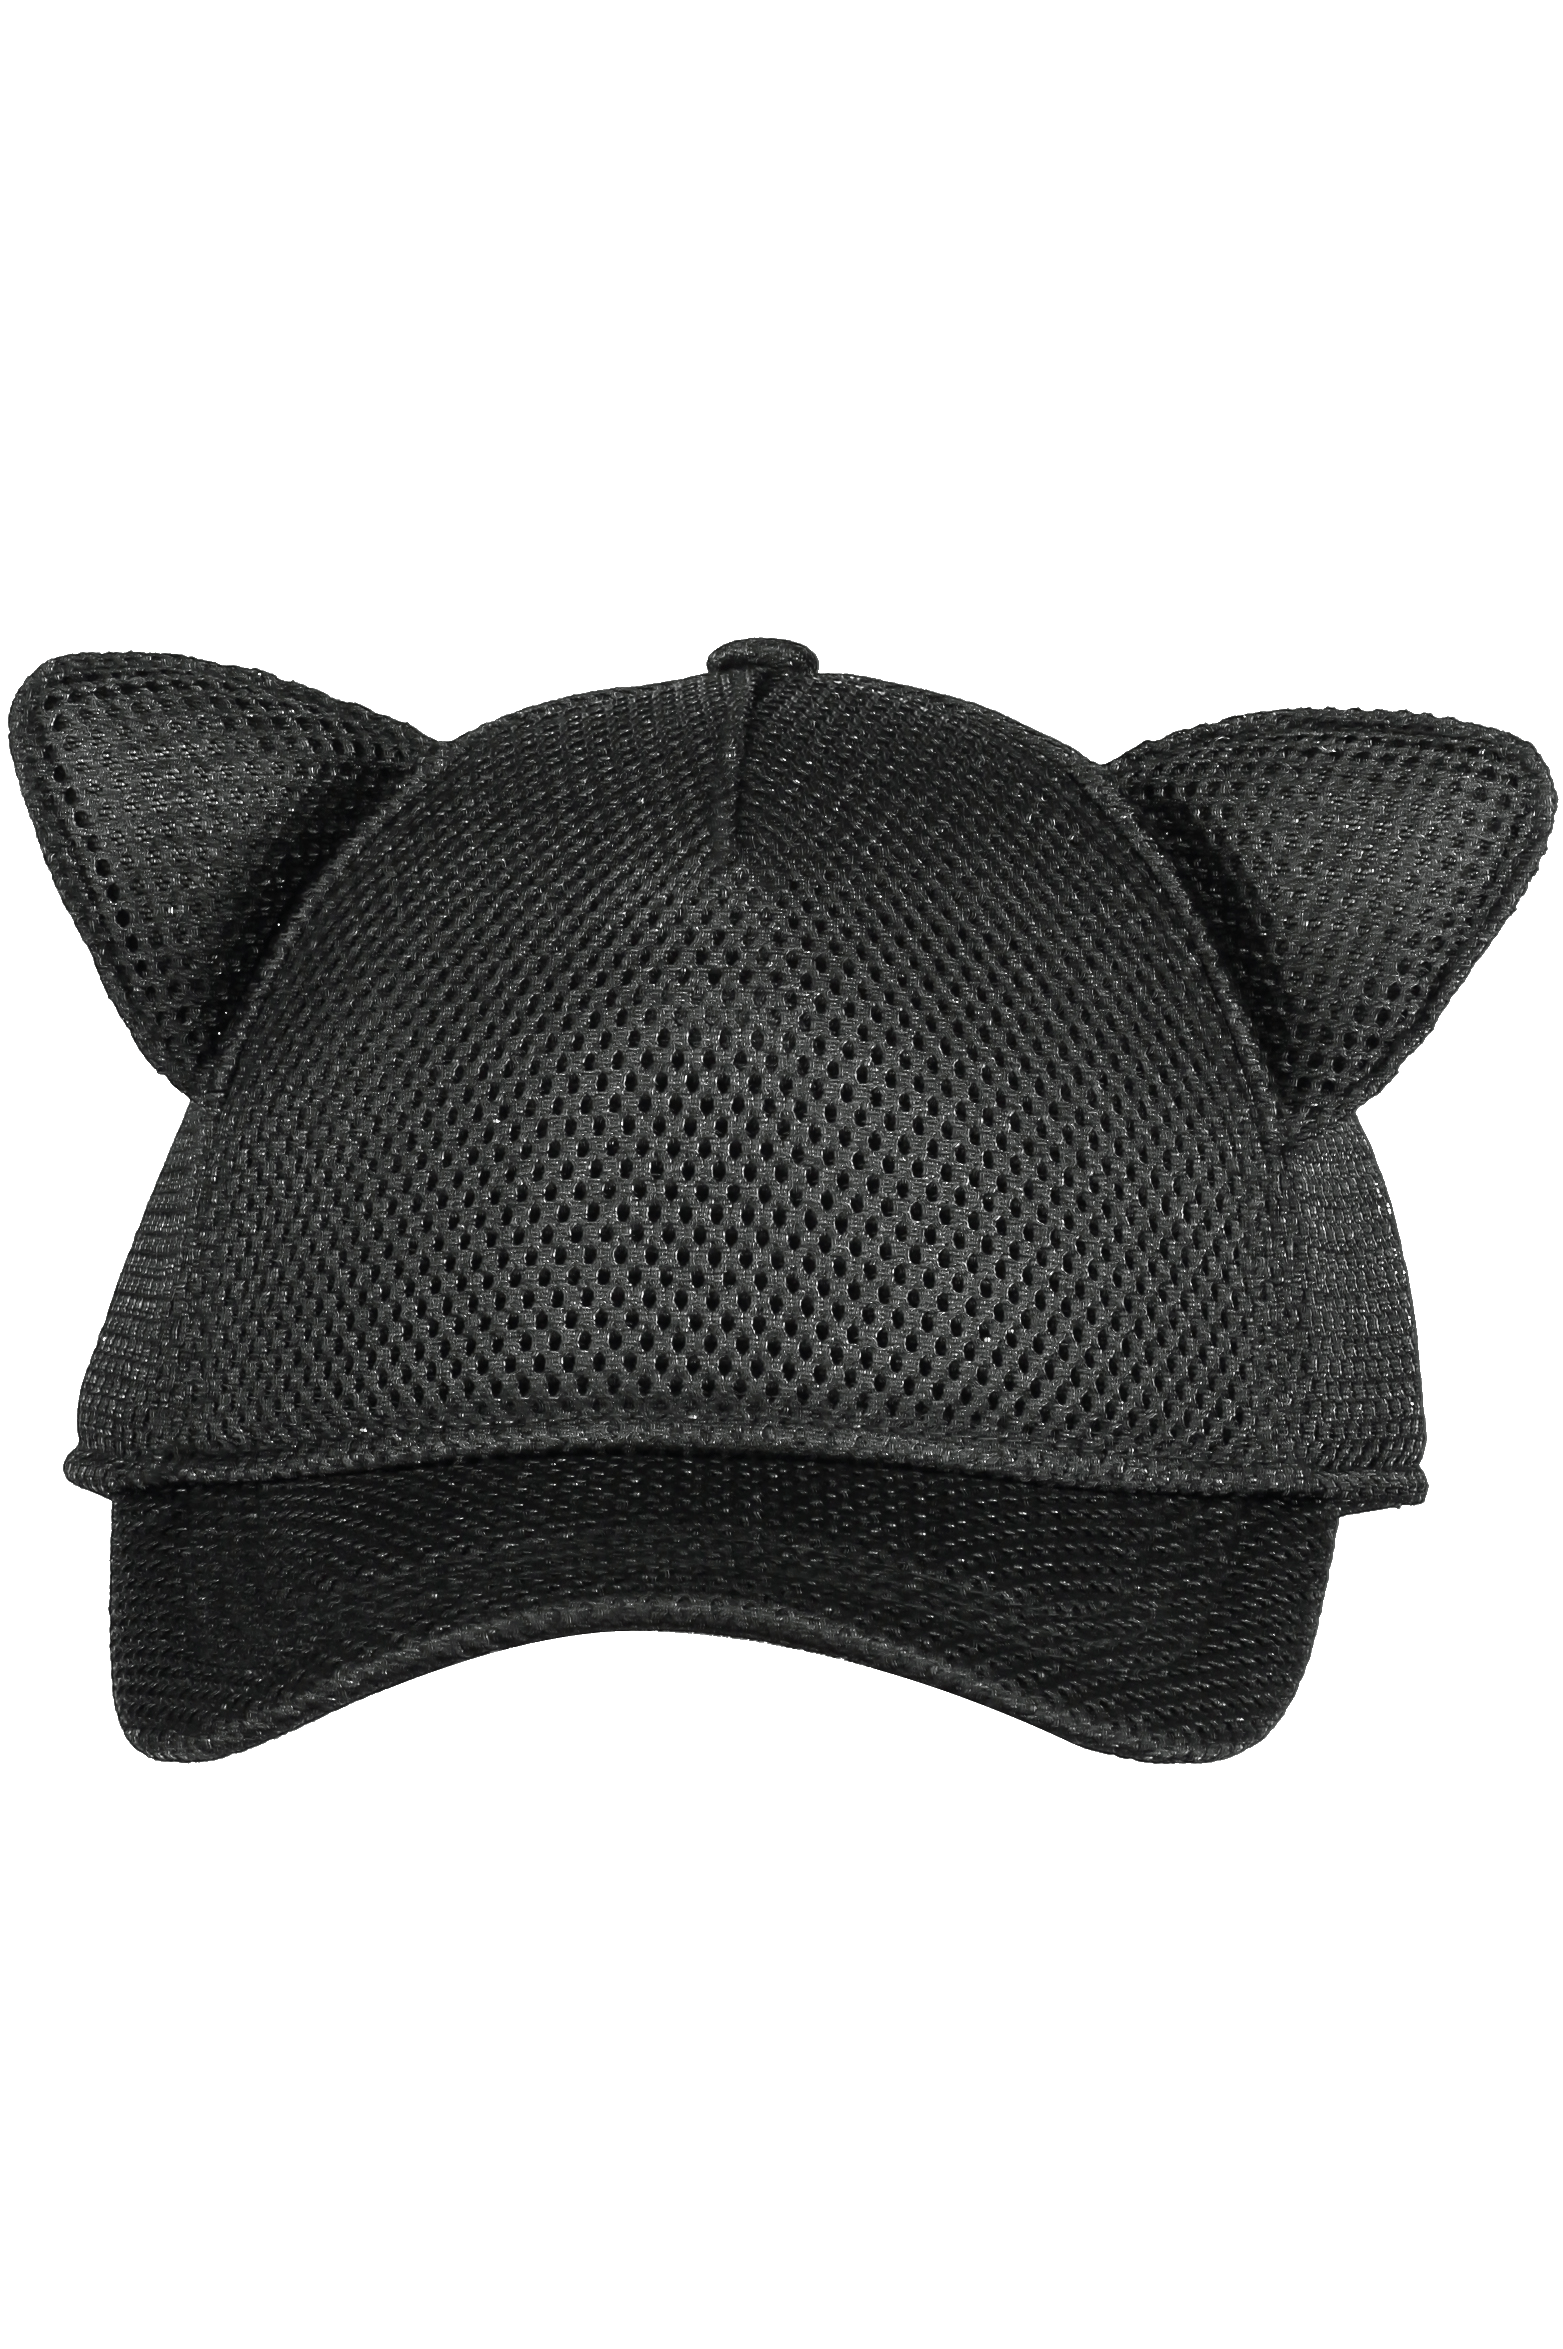 cap with ears1.png